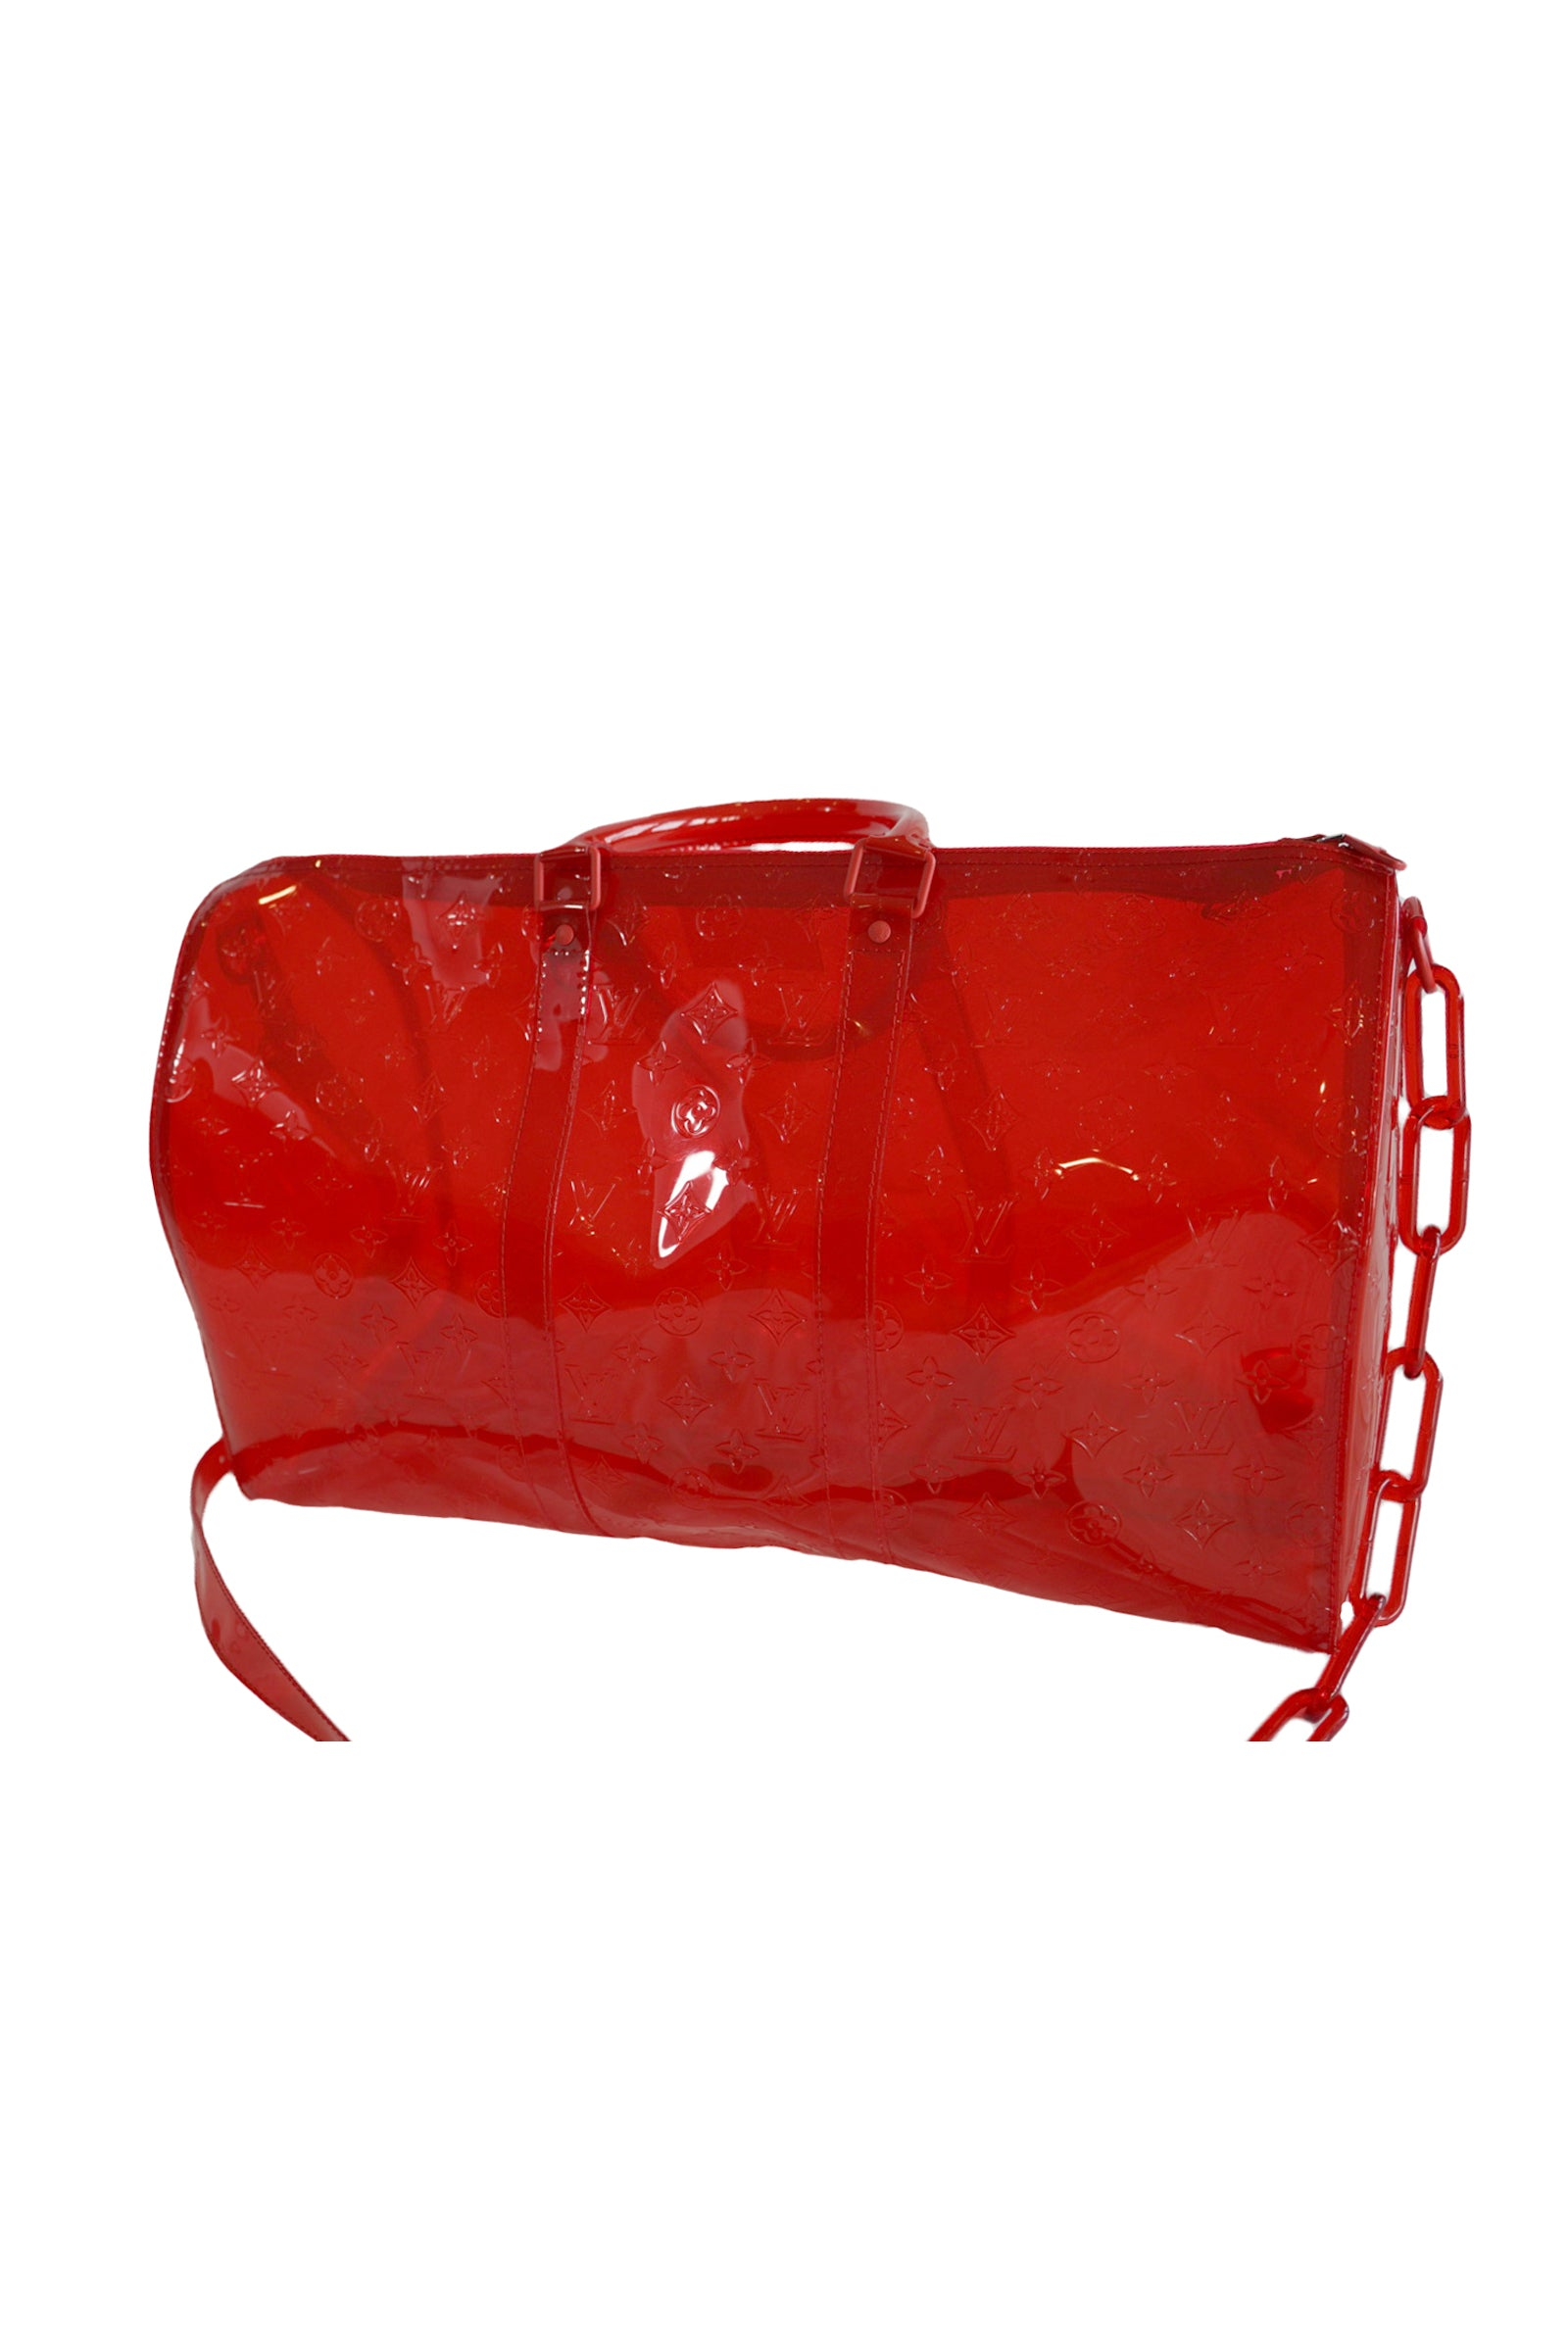 Louis Vuitton Red Duffle Bag Virgil Abloh collection